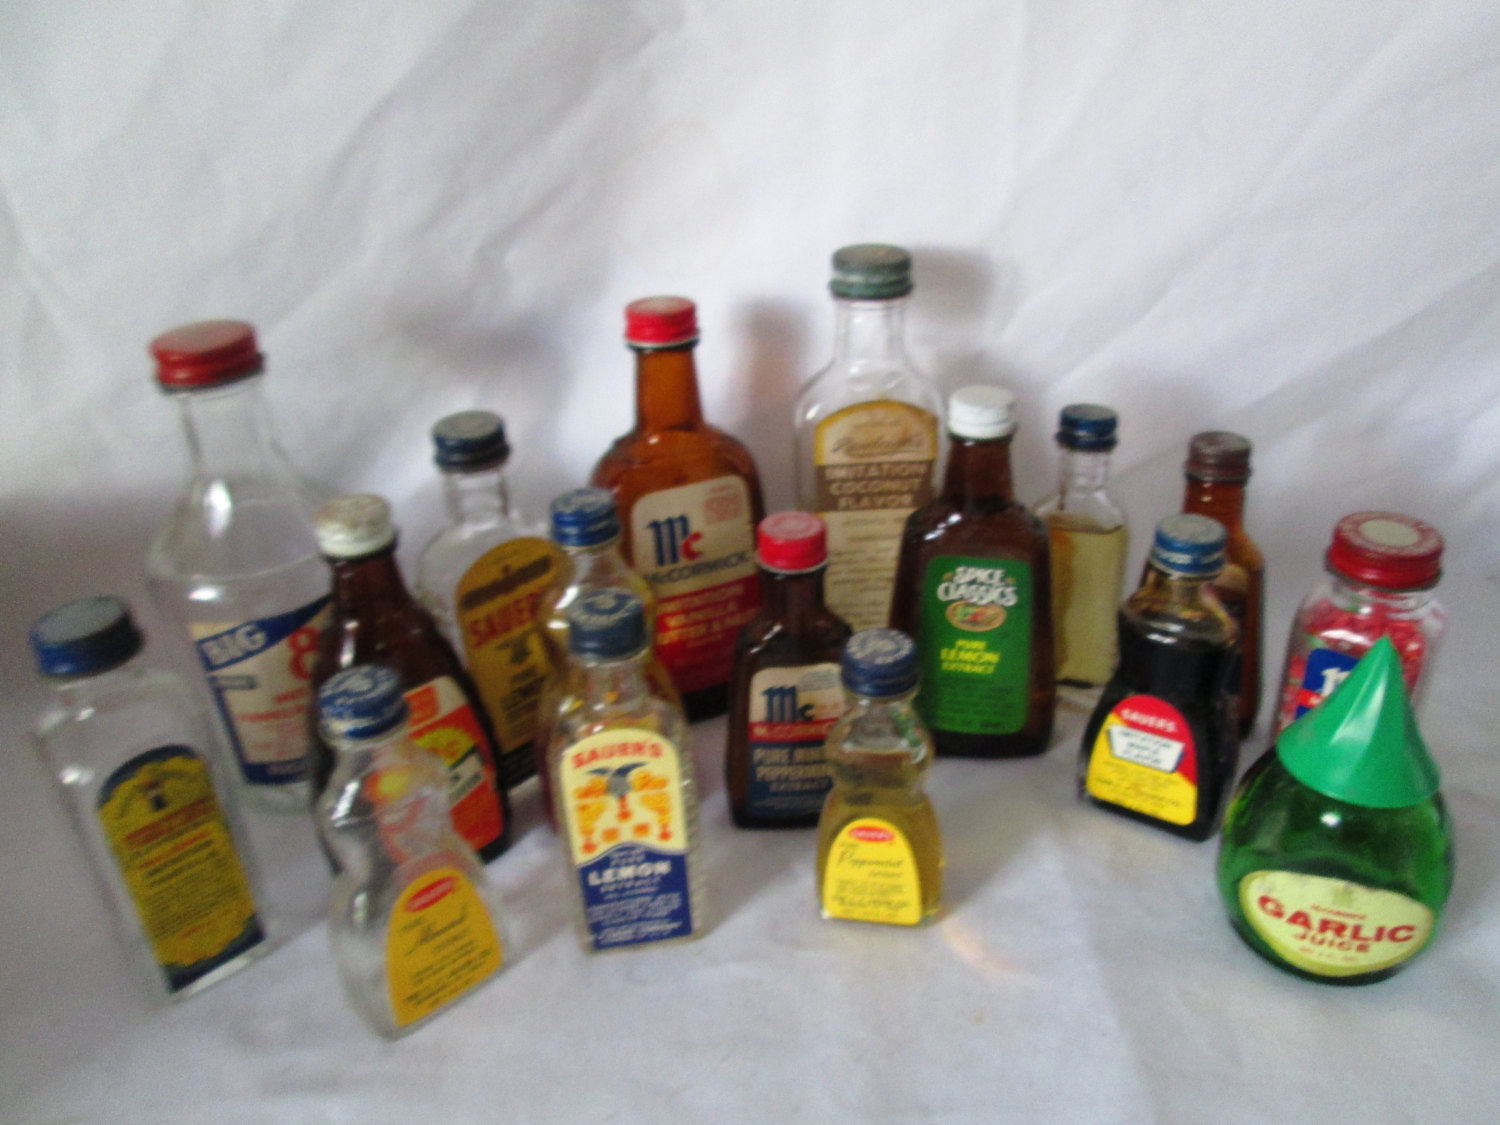 Vintage Lot of 17 glass bottles of extracts flavoring Sauer's McCormick Ann  Page Rawleigh's 1930's-